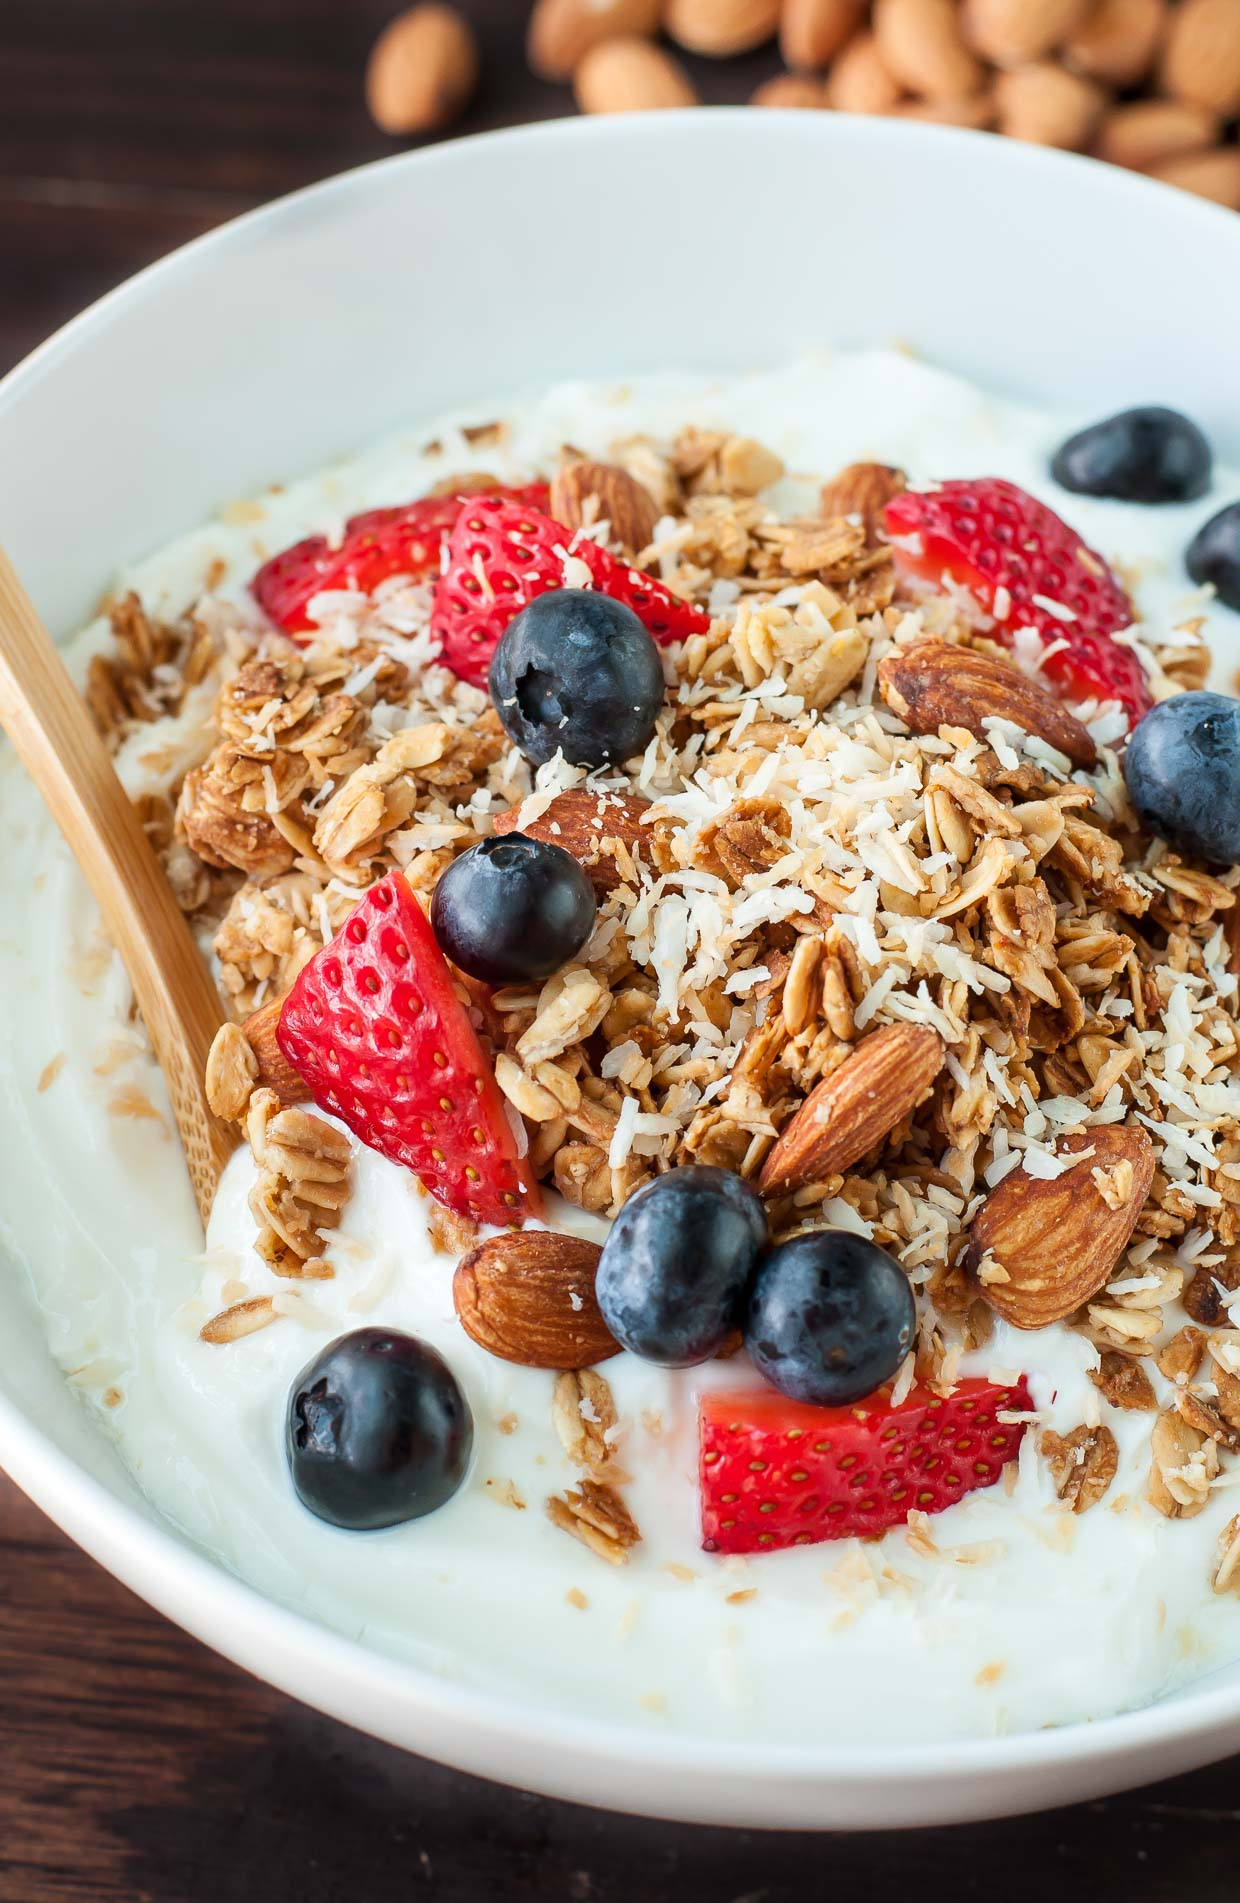 red-white-blueberry-maple-almond-granola-breakfast-bowls-yogurt-recipe-5651-1.jpg